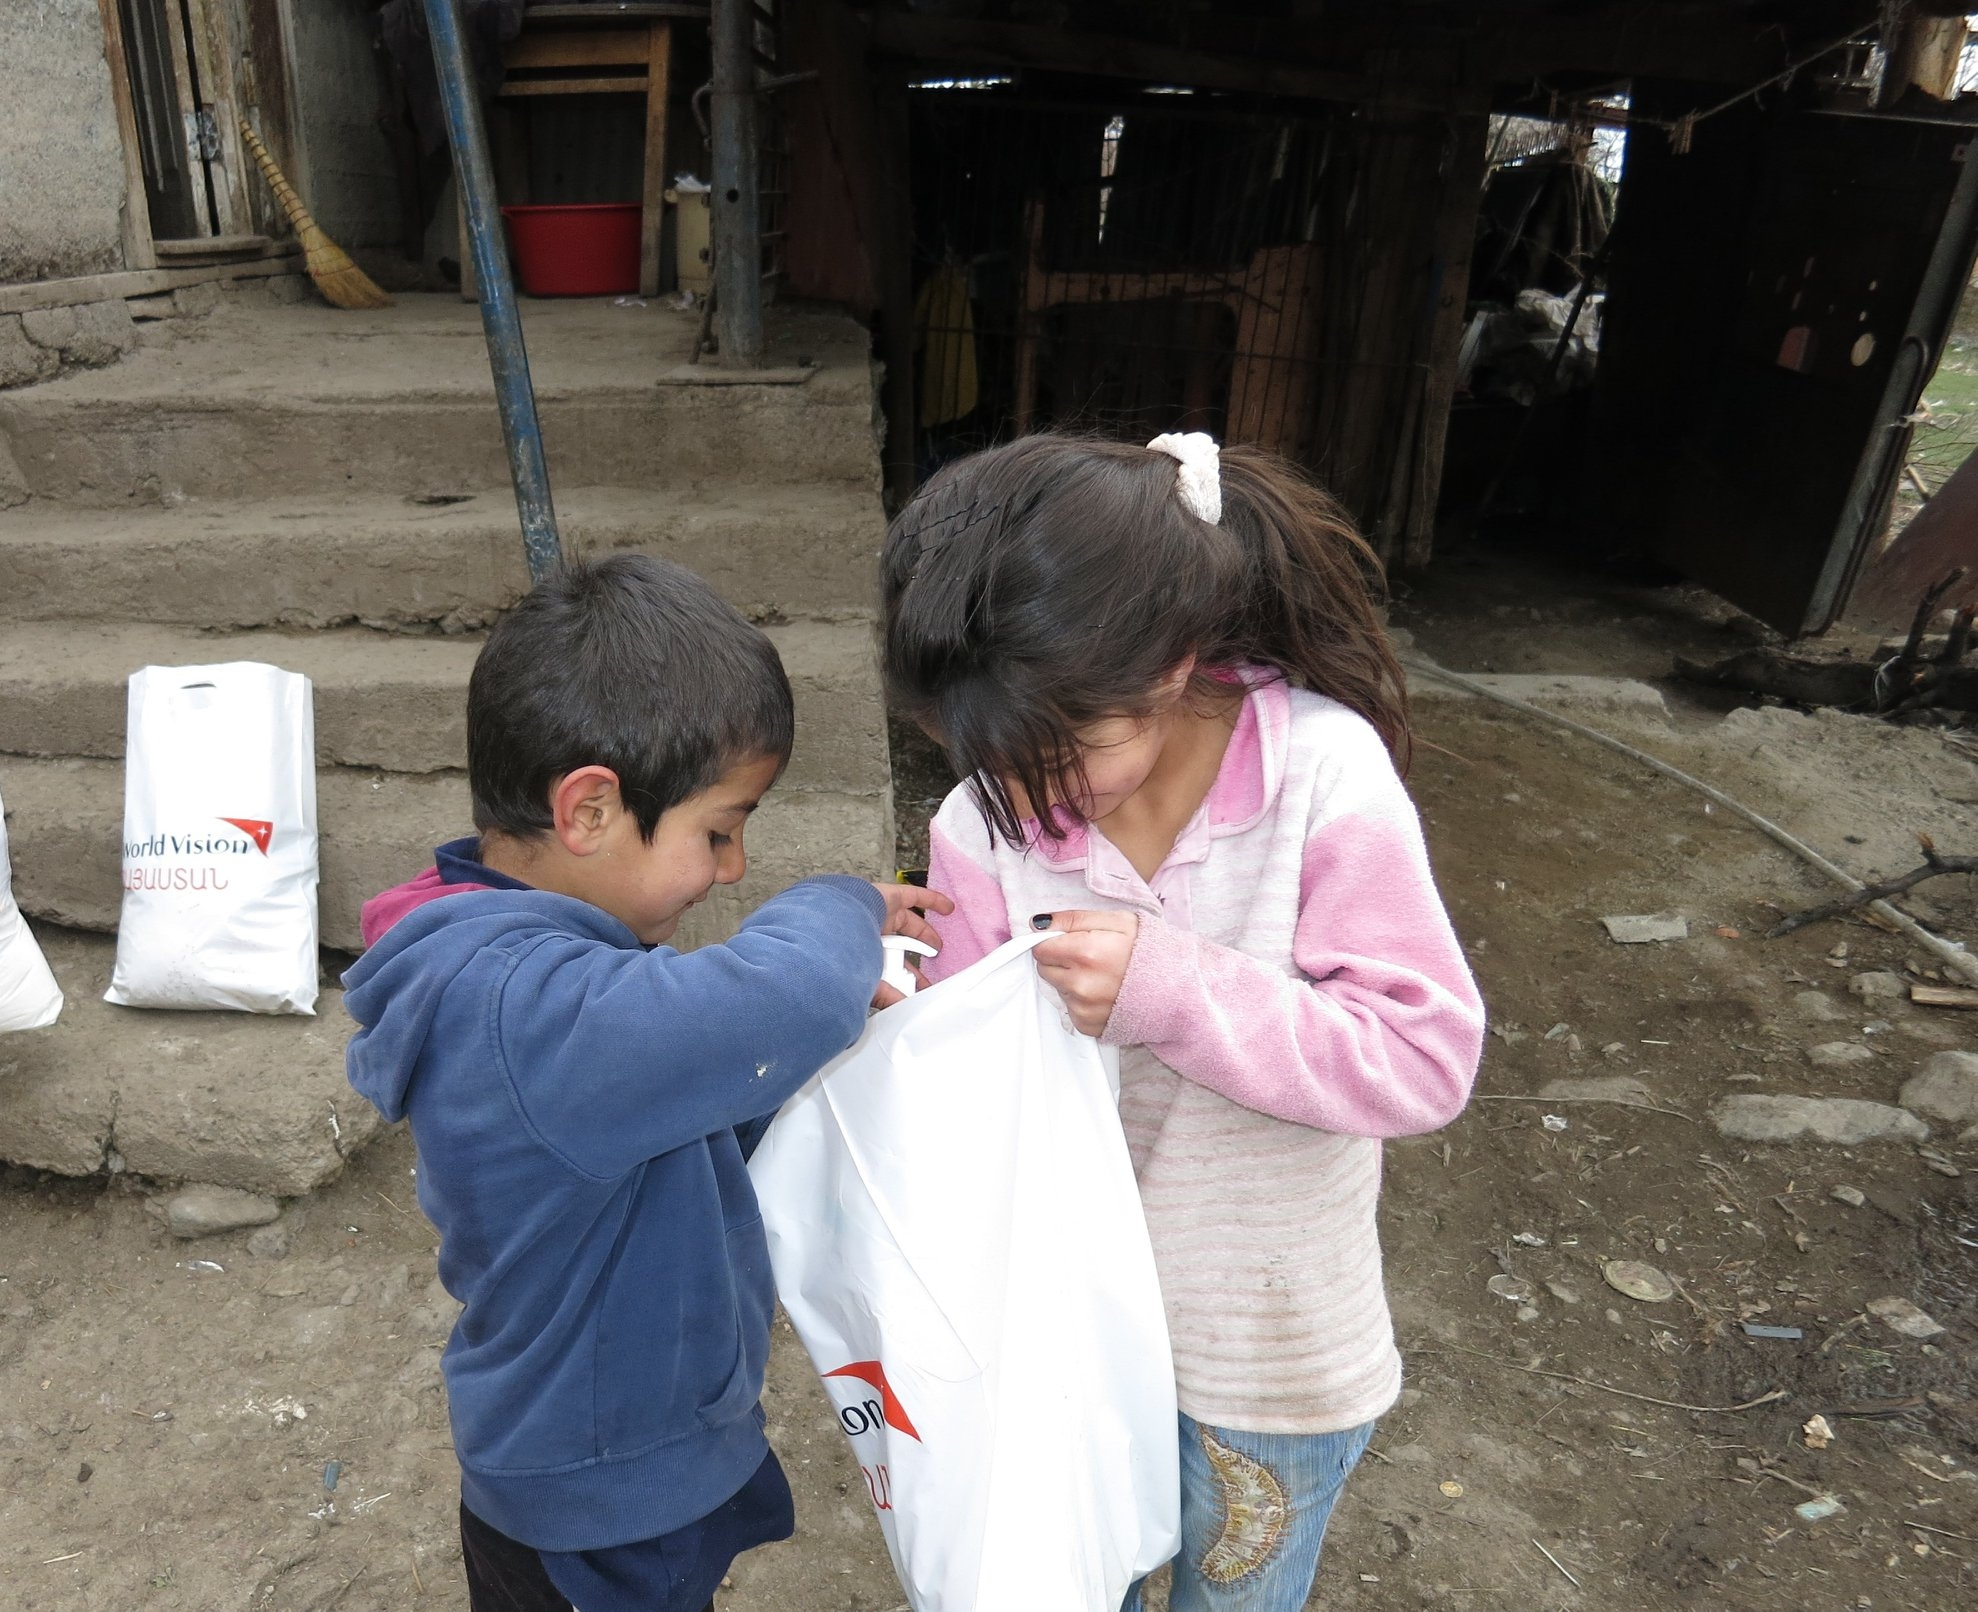 COVID19: Food and hygiene items distribution to extremely poor families in Armenia